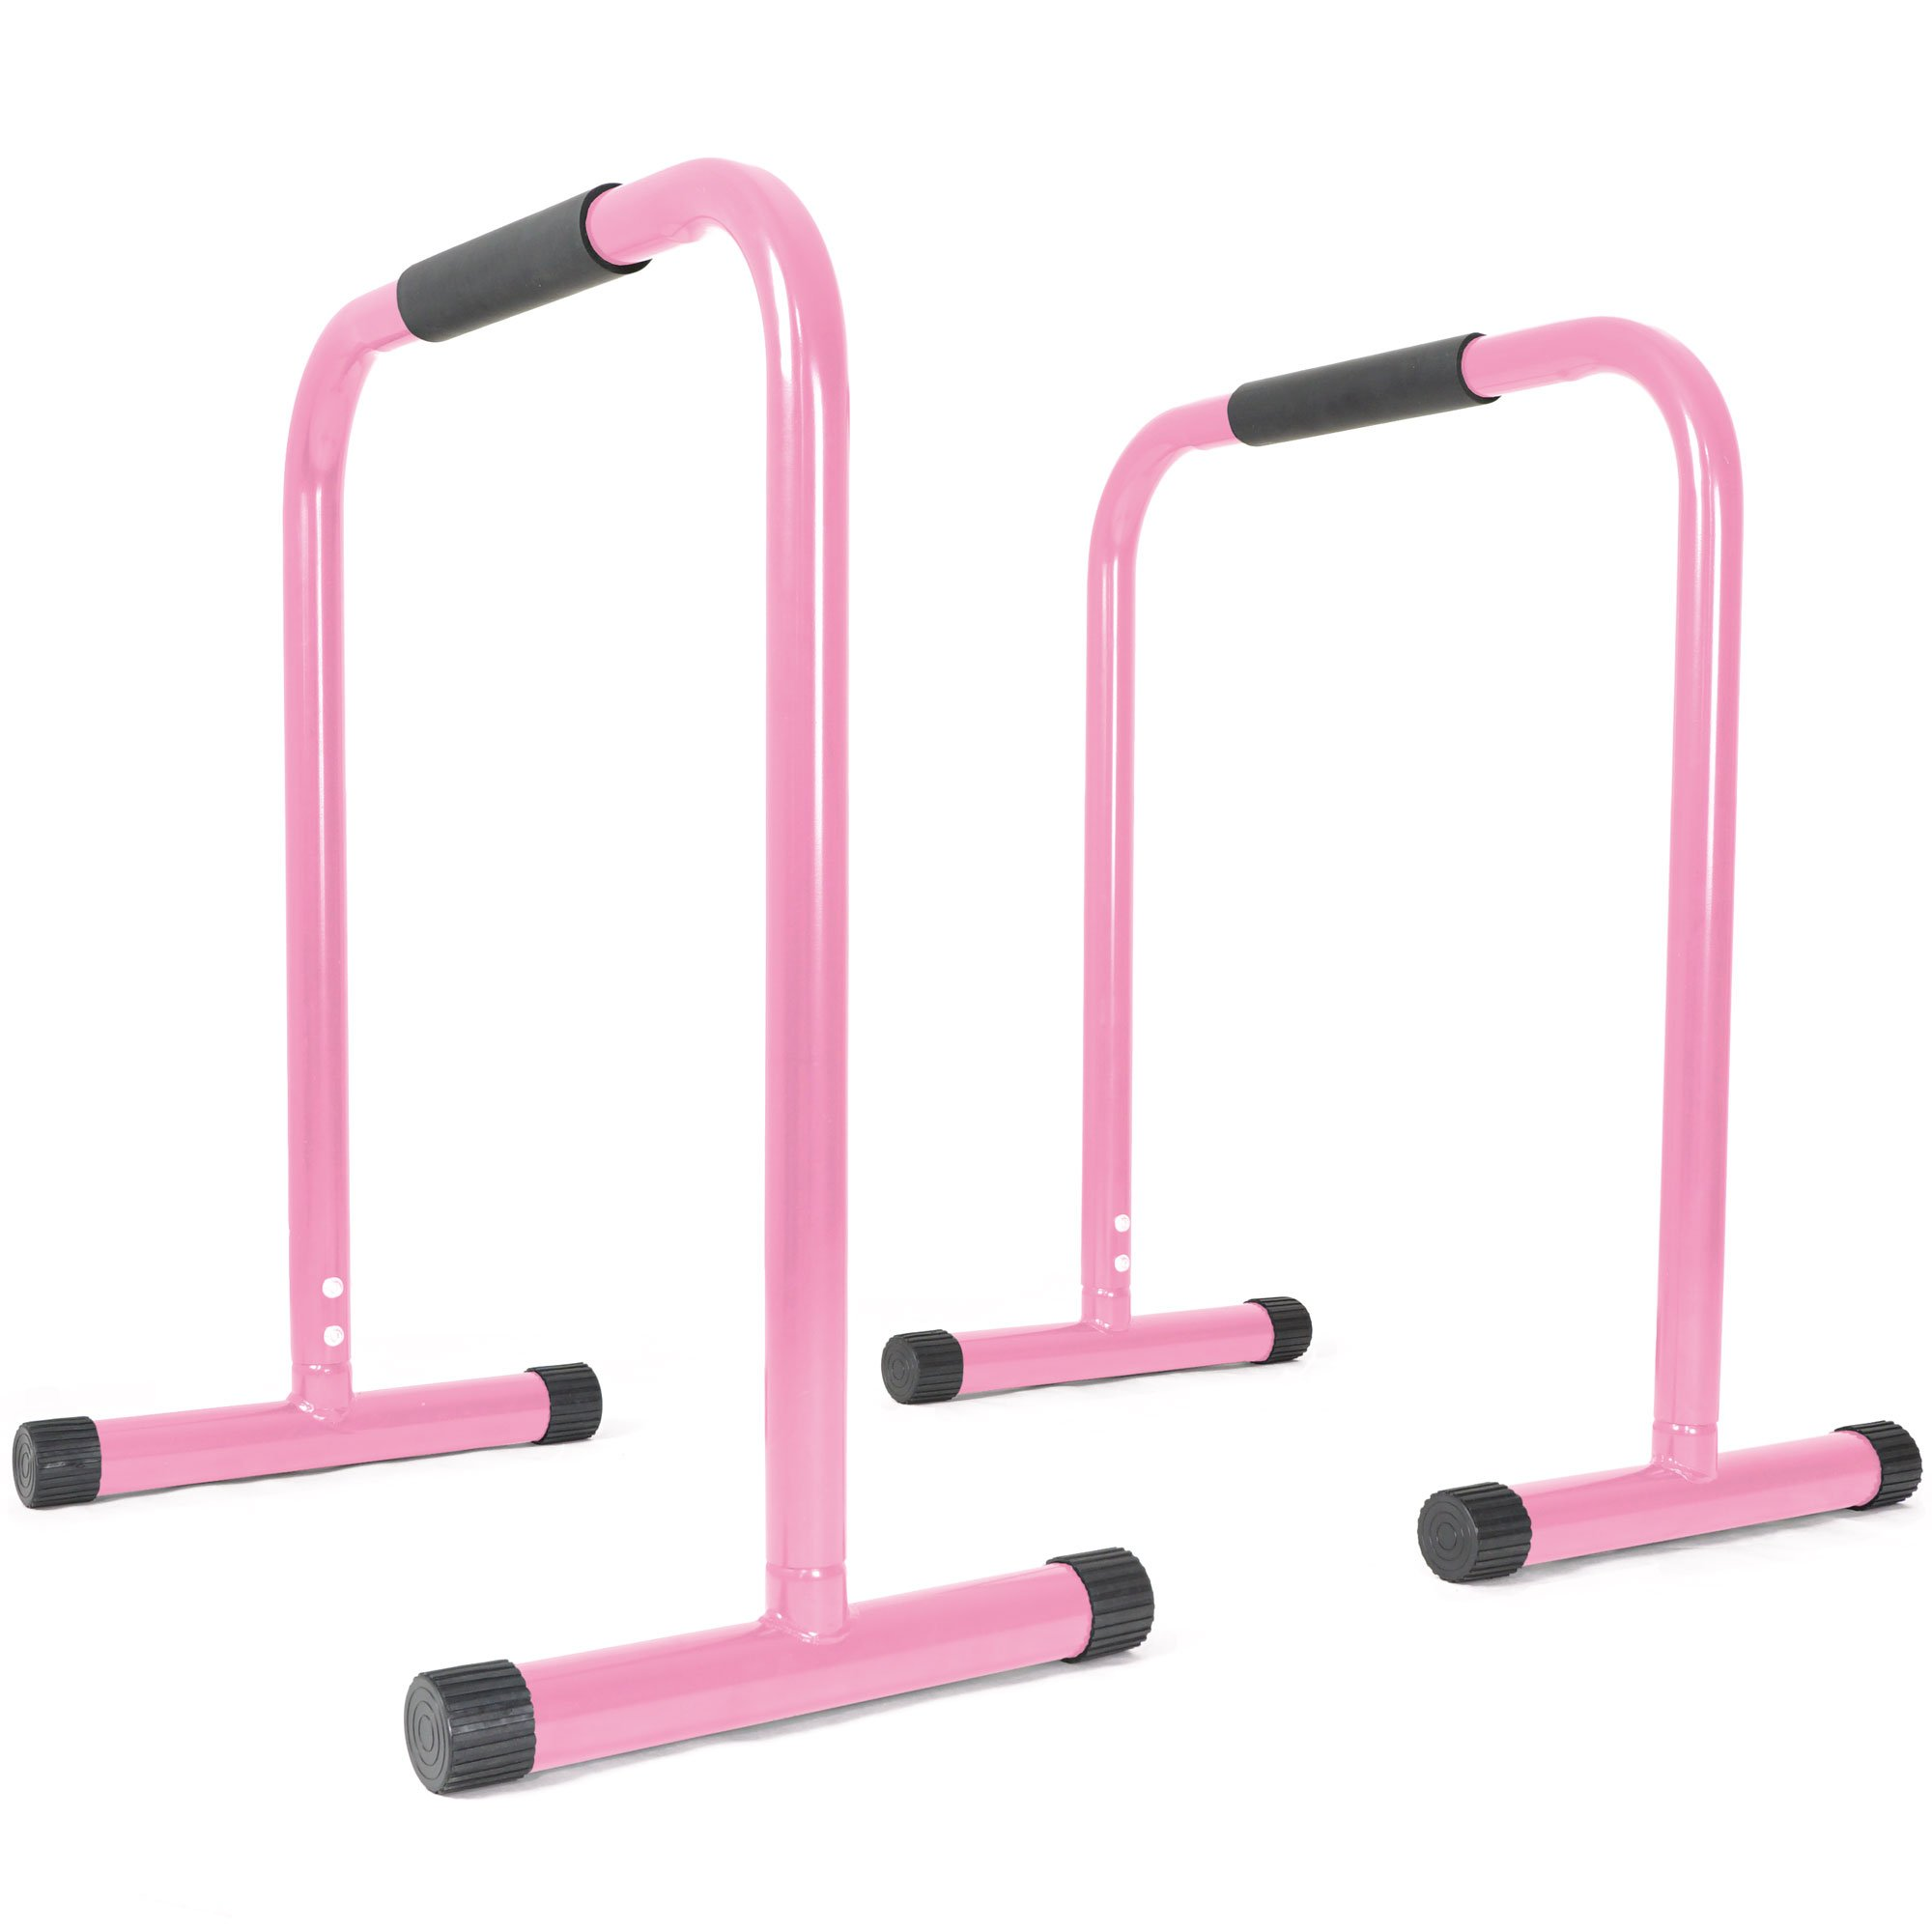 Titan Fitness Pink Dip Station Leg Raise Bars Body Weight Parallettes Crossfit by Titan Fitness